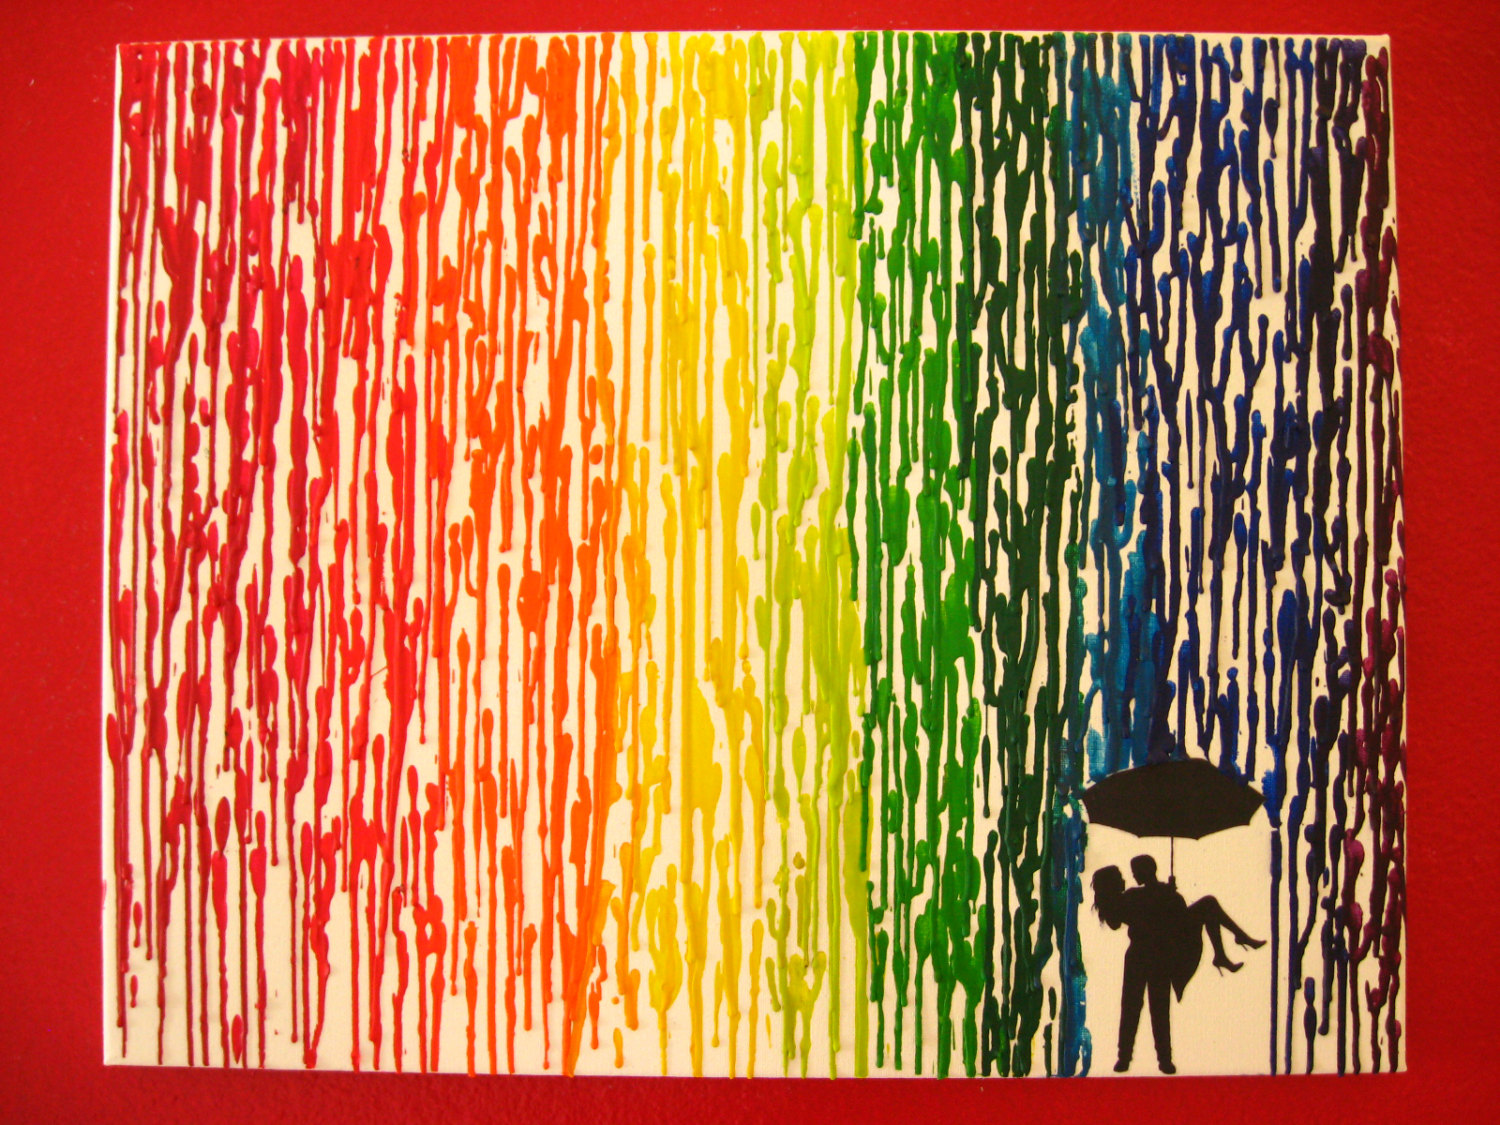 Fabulous Rainbow Encaustic Wax Painting X Canvas By Fembydesign With Couple Under Umbrella Silhouette